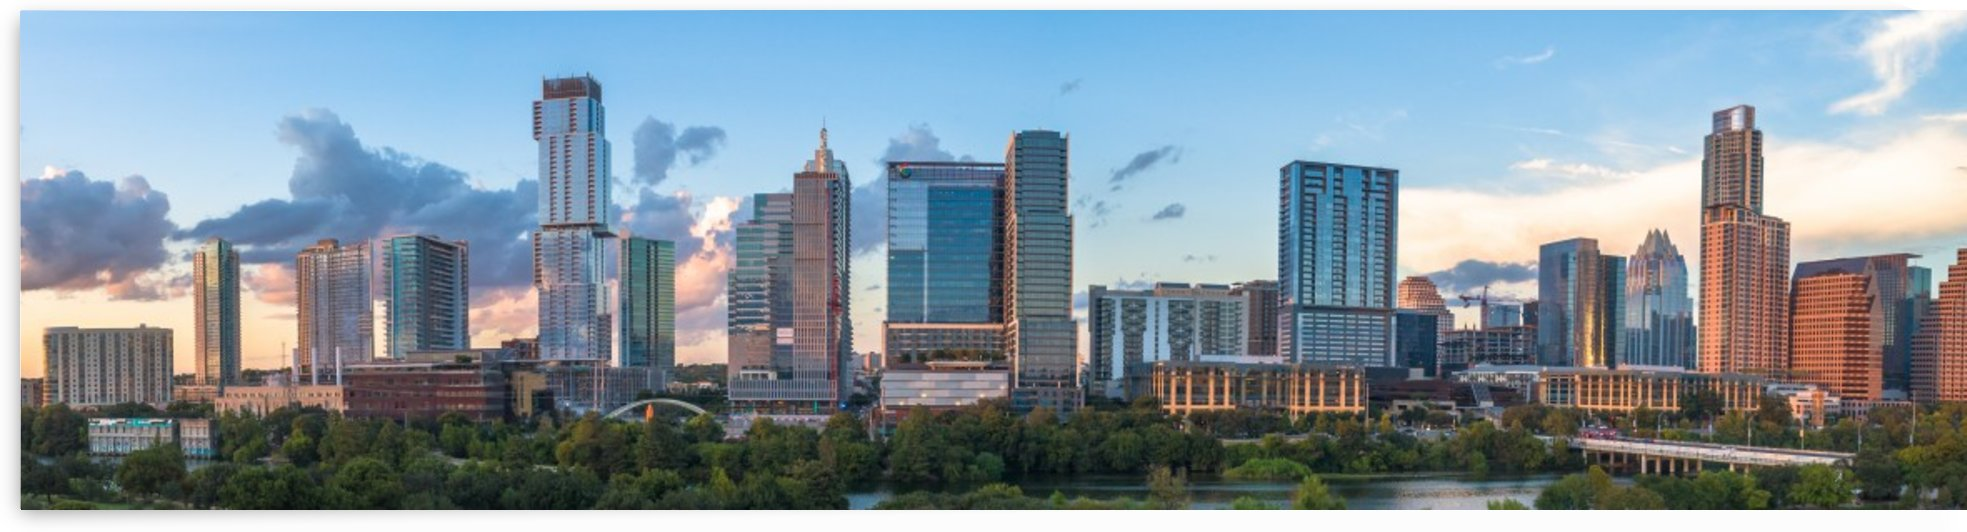 Austin TX Downtown Skyline by Infinity Design and Photography